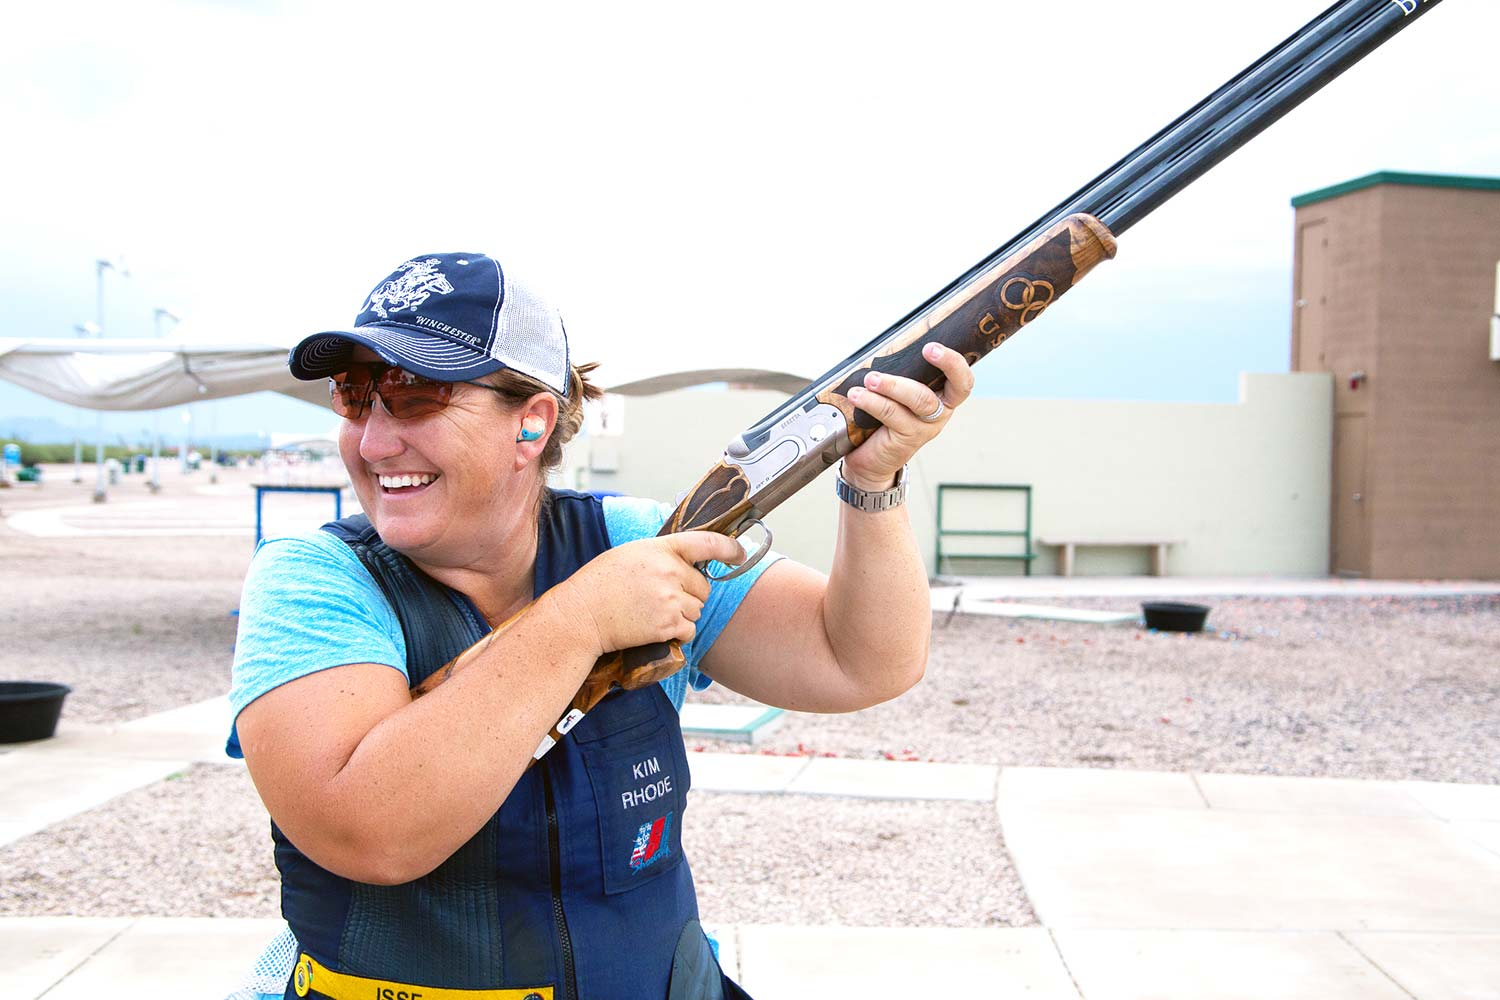 Kim Rhode on Getting People Involved in Shooting Sports